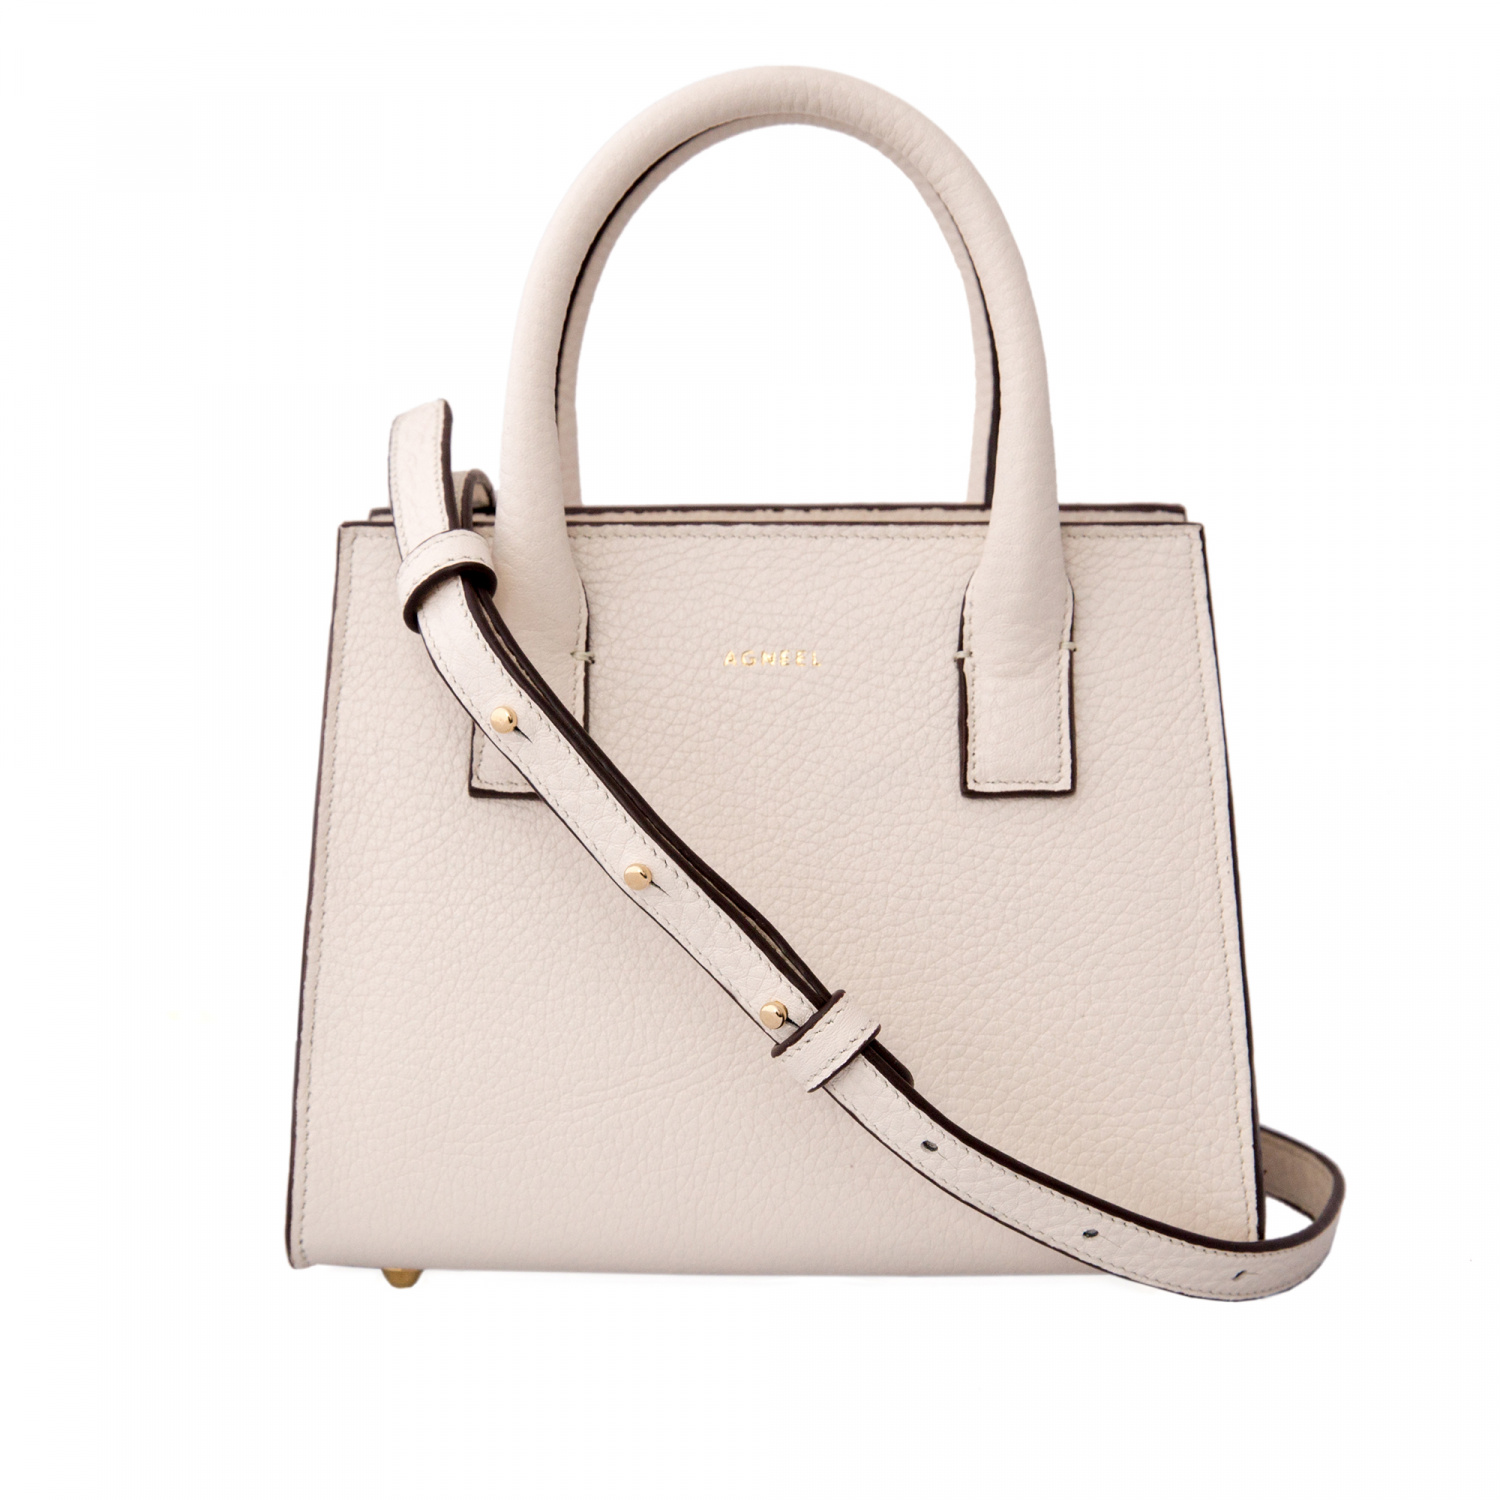 MIA MINI BAG IN STRUCTURED CALF LEATHER